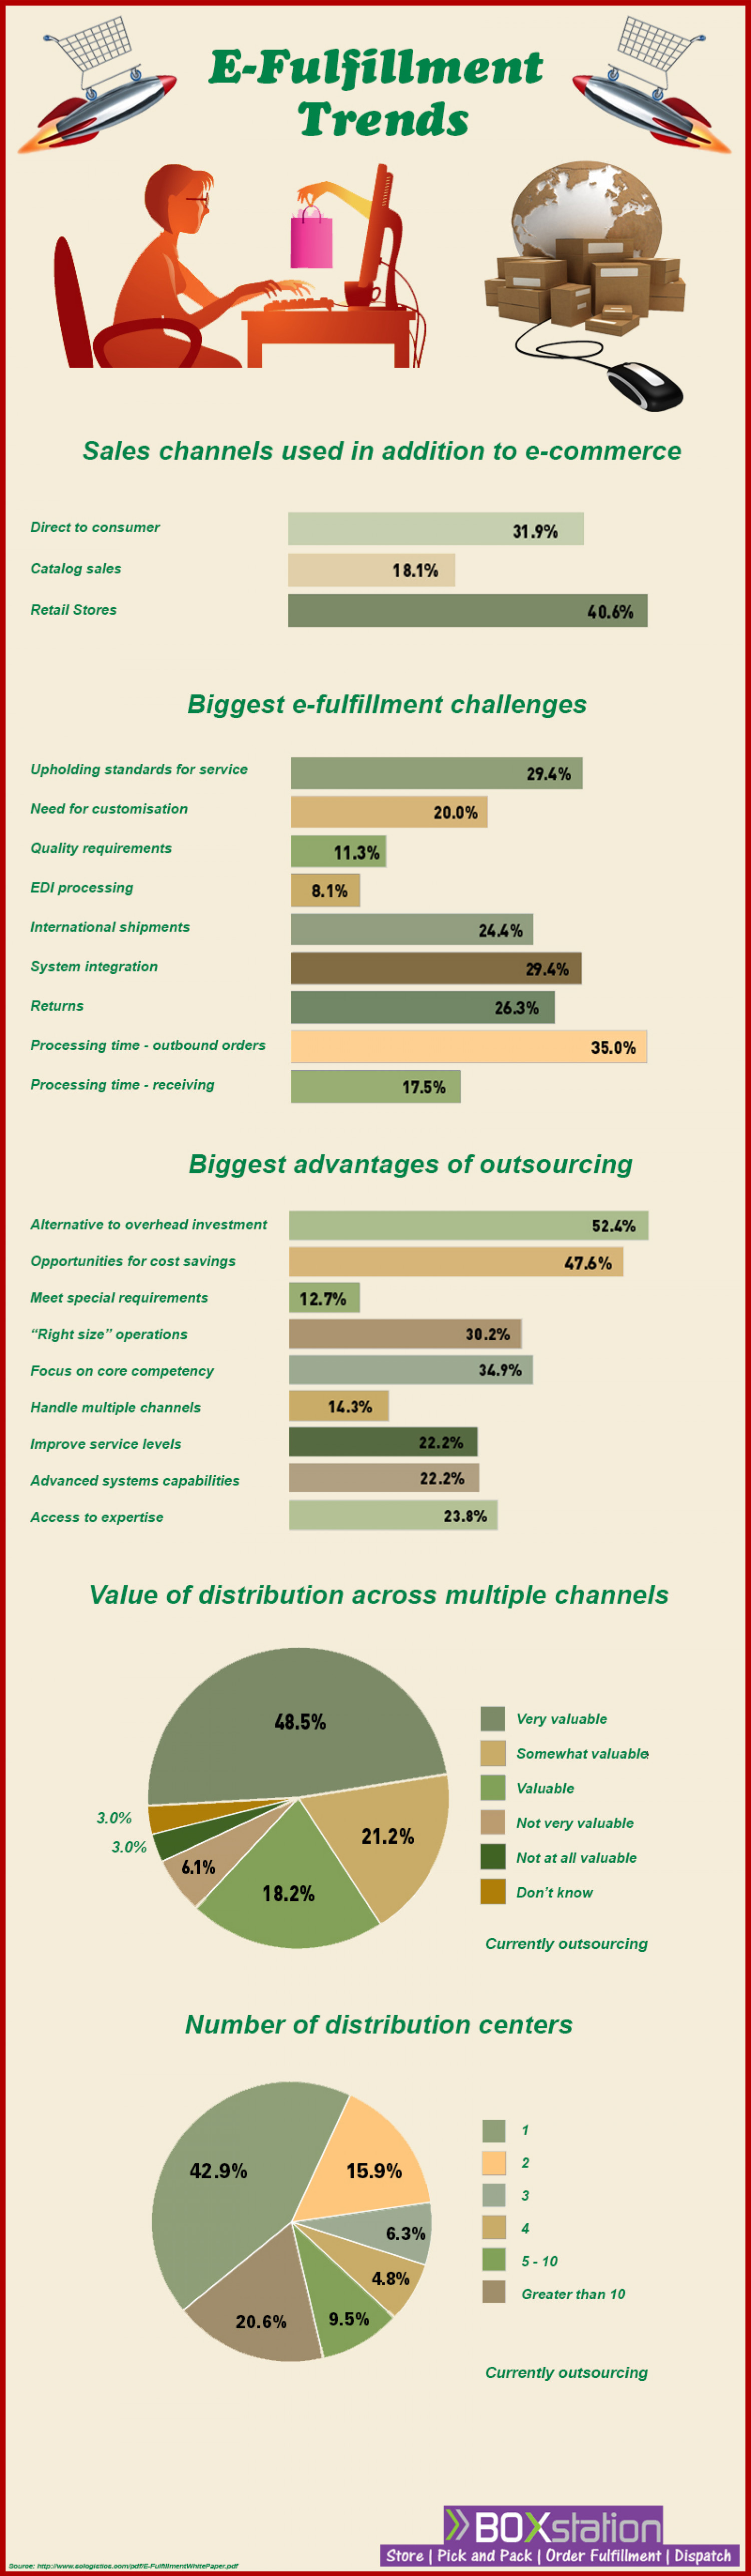 E-Fulfillment  Trends Infographic